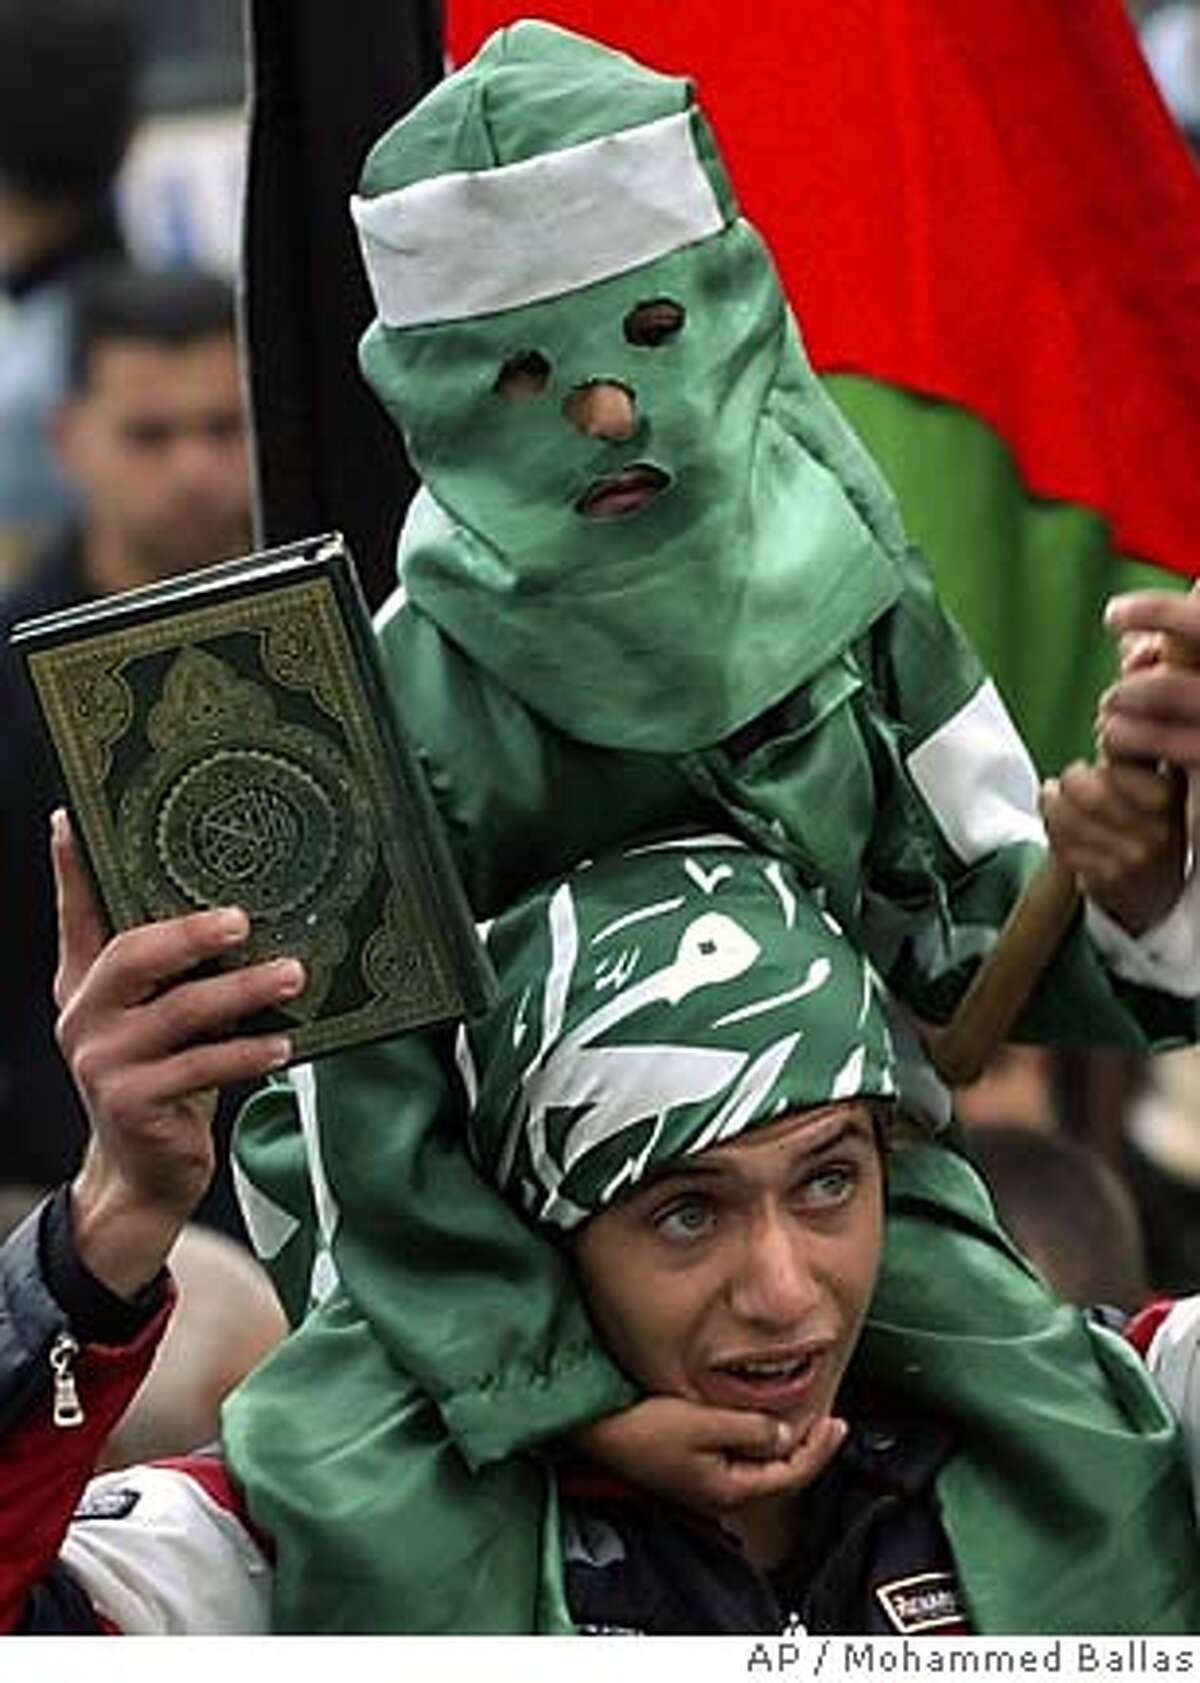 Hamas supporters, one holding a copy of the Quran and a child on his shoulders, take part in a rally celebrating the group's strong showing in municipal elections in the West Bank town Jenin, Friday Dec. 16, 2005. The Hamas militant group won local elections in the West Bank's largest cities, according to preliminary results released Friday, dealing a harsh blow to the ruling Fatah party just six weeks ahead of a parliamentary poll.(AP Photo/Mohammed Ballas)